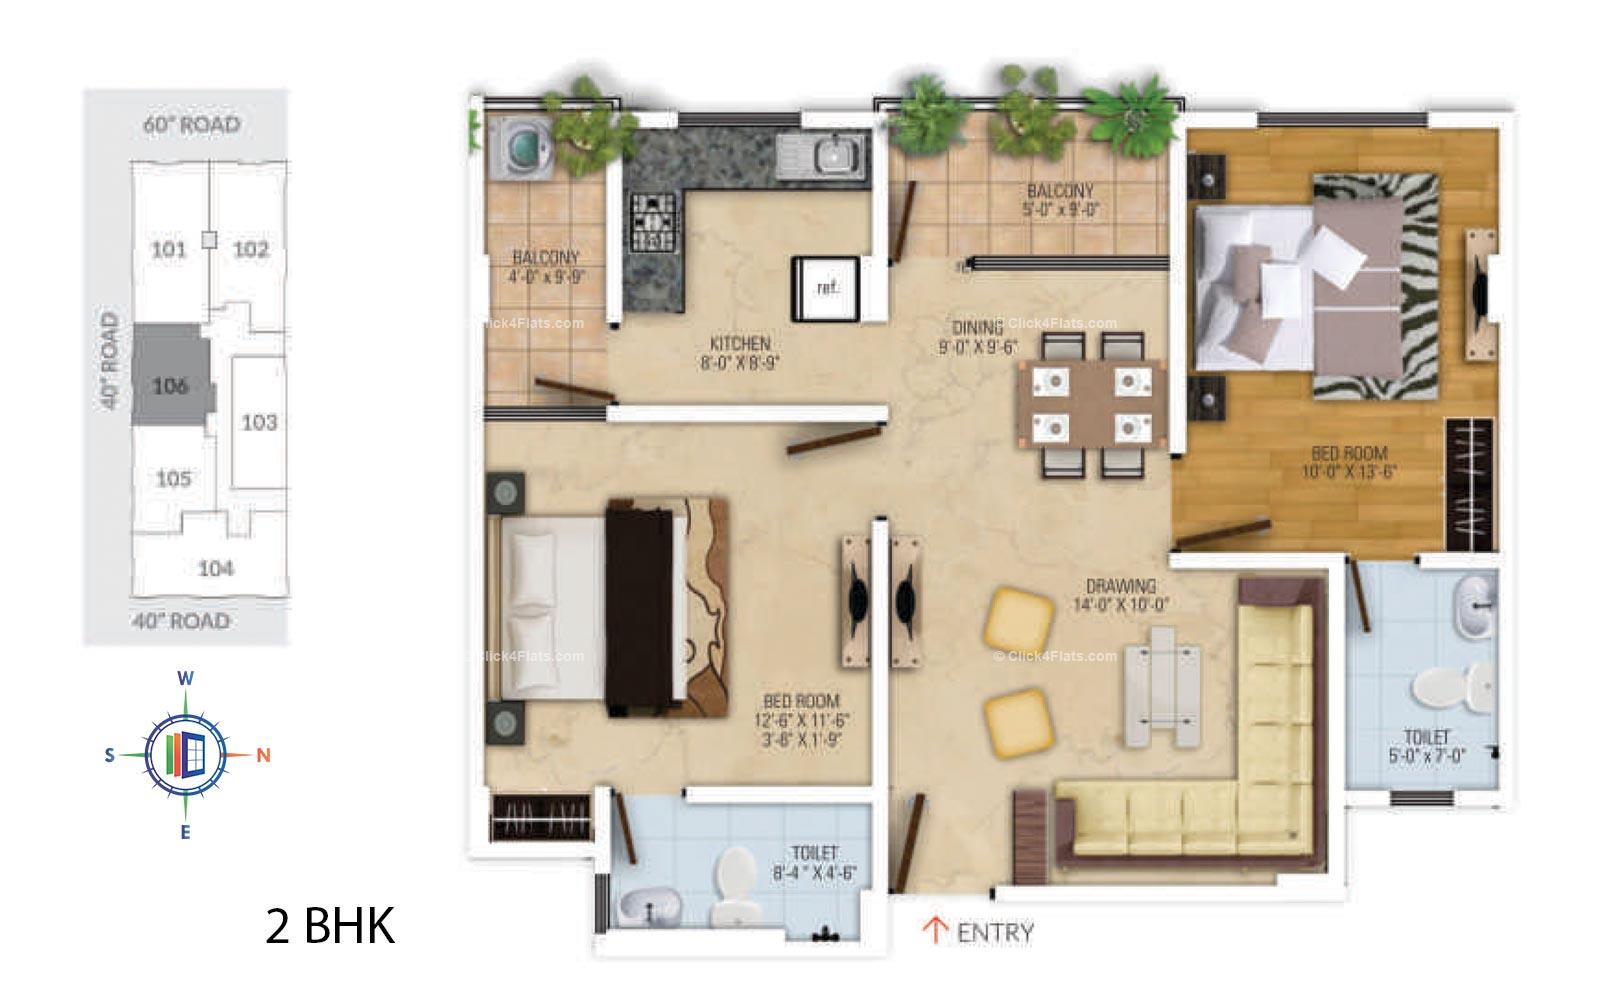 Royal Avenue 2 BHK